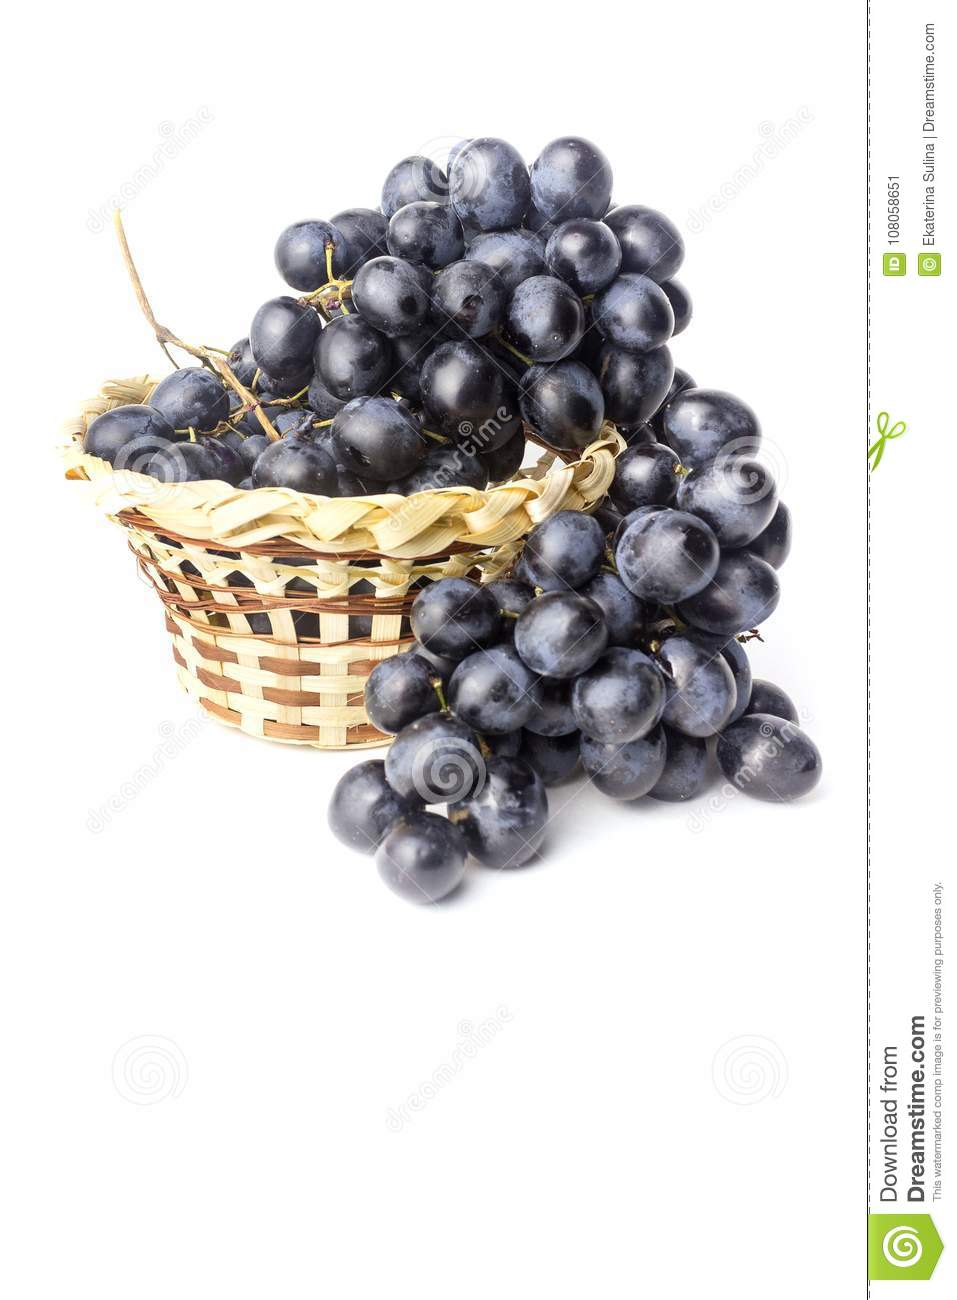 A bunch of blue grapes in a basket isolated on a white background